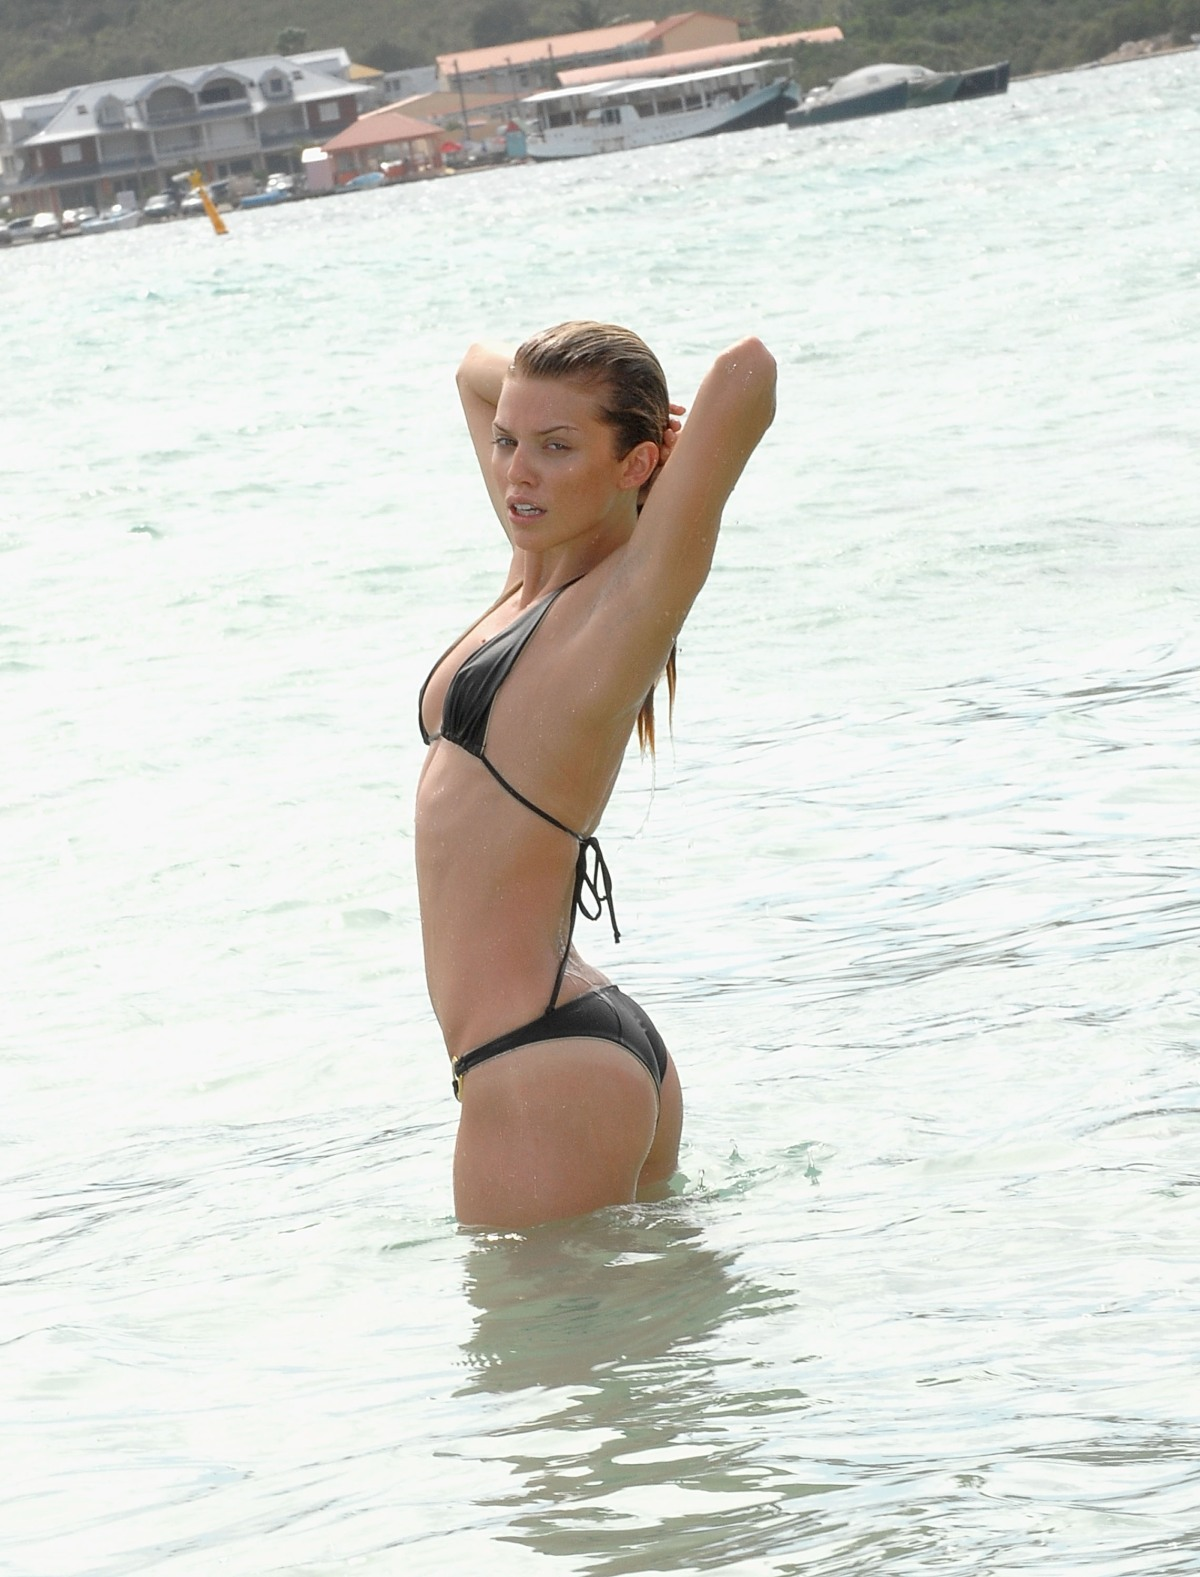 http://th3sha.files.wordpress.com/2010/04/29792_annalynnemccordvisitsthewestindawnbeachhotel_1_122_44lo.jpg?w=1200